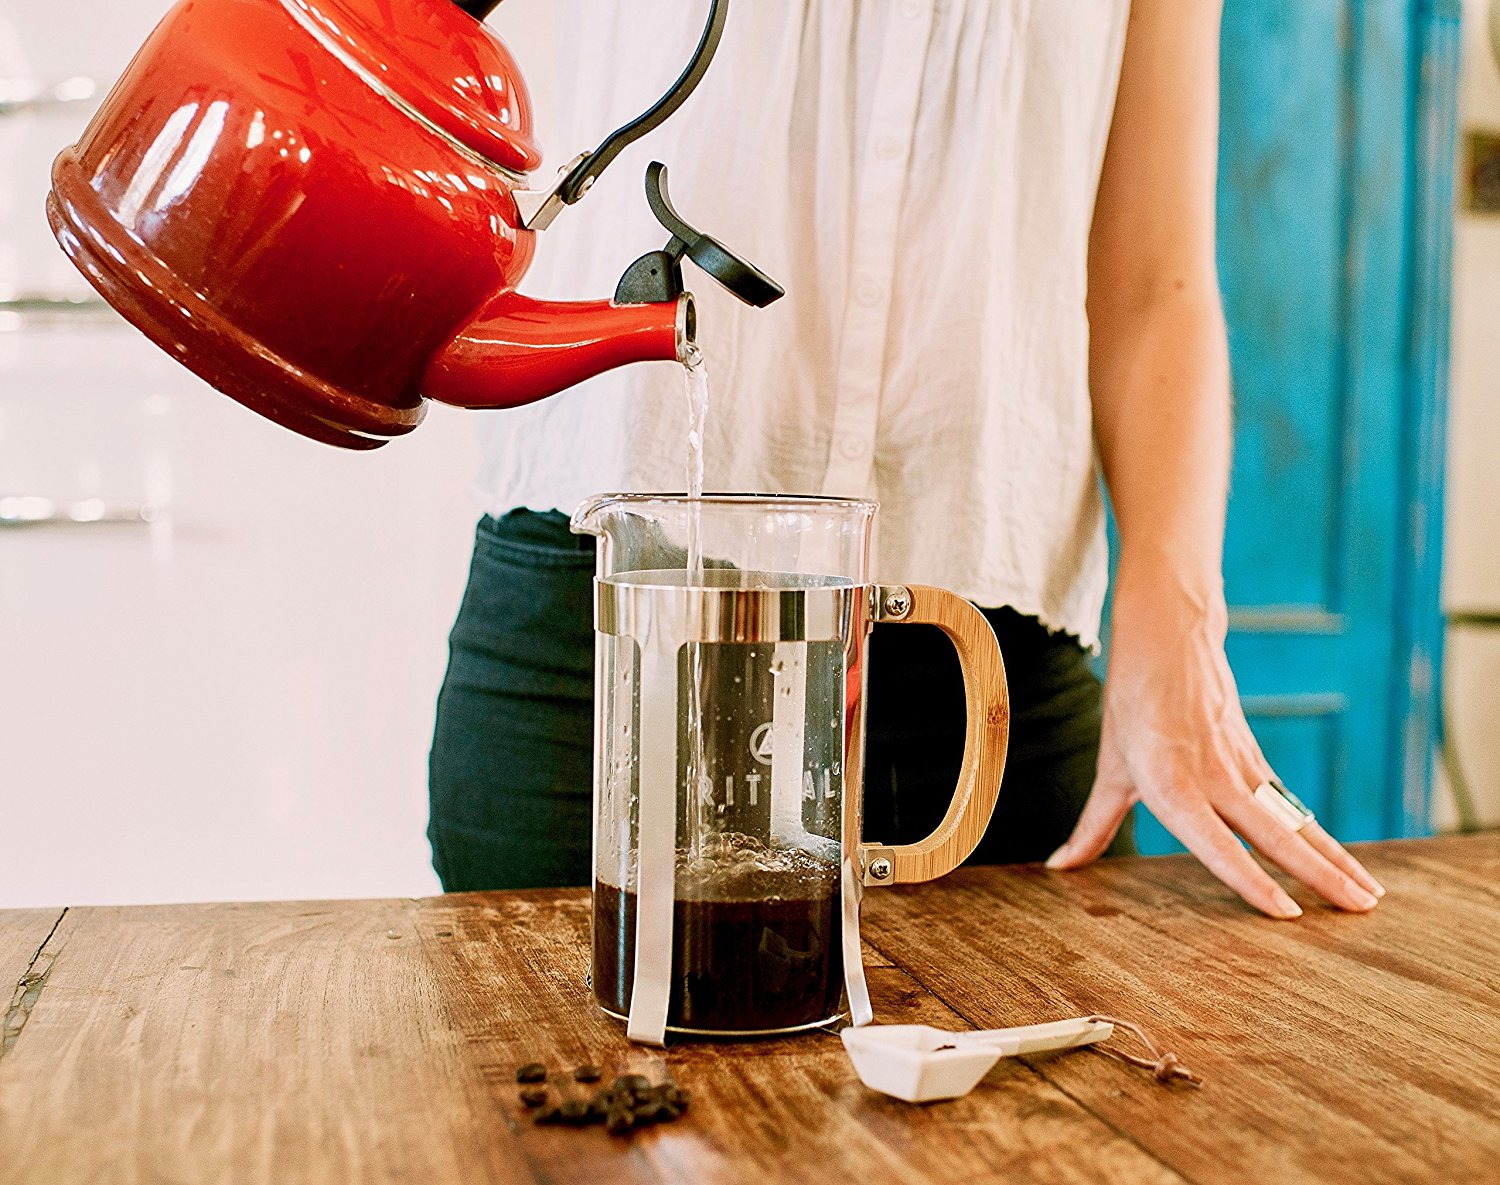 7 of the best french press coffee makers money can buy buy don 39 t buy reliable no nonsense. Black Bedroom Furniture Sets. Home Design Ideas